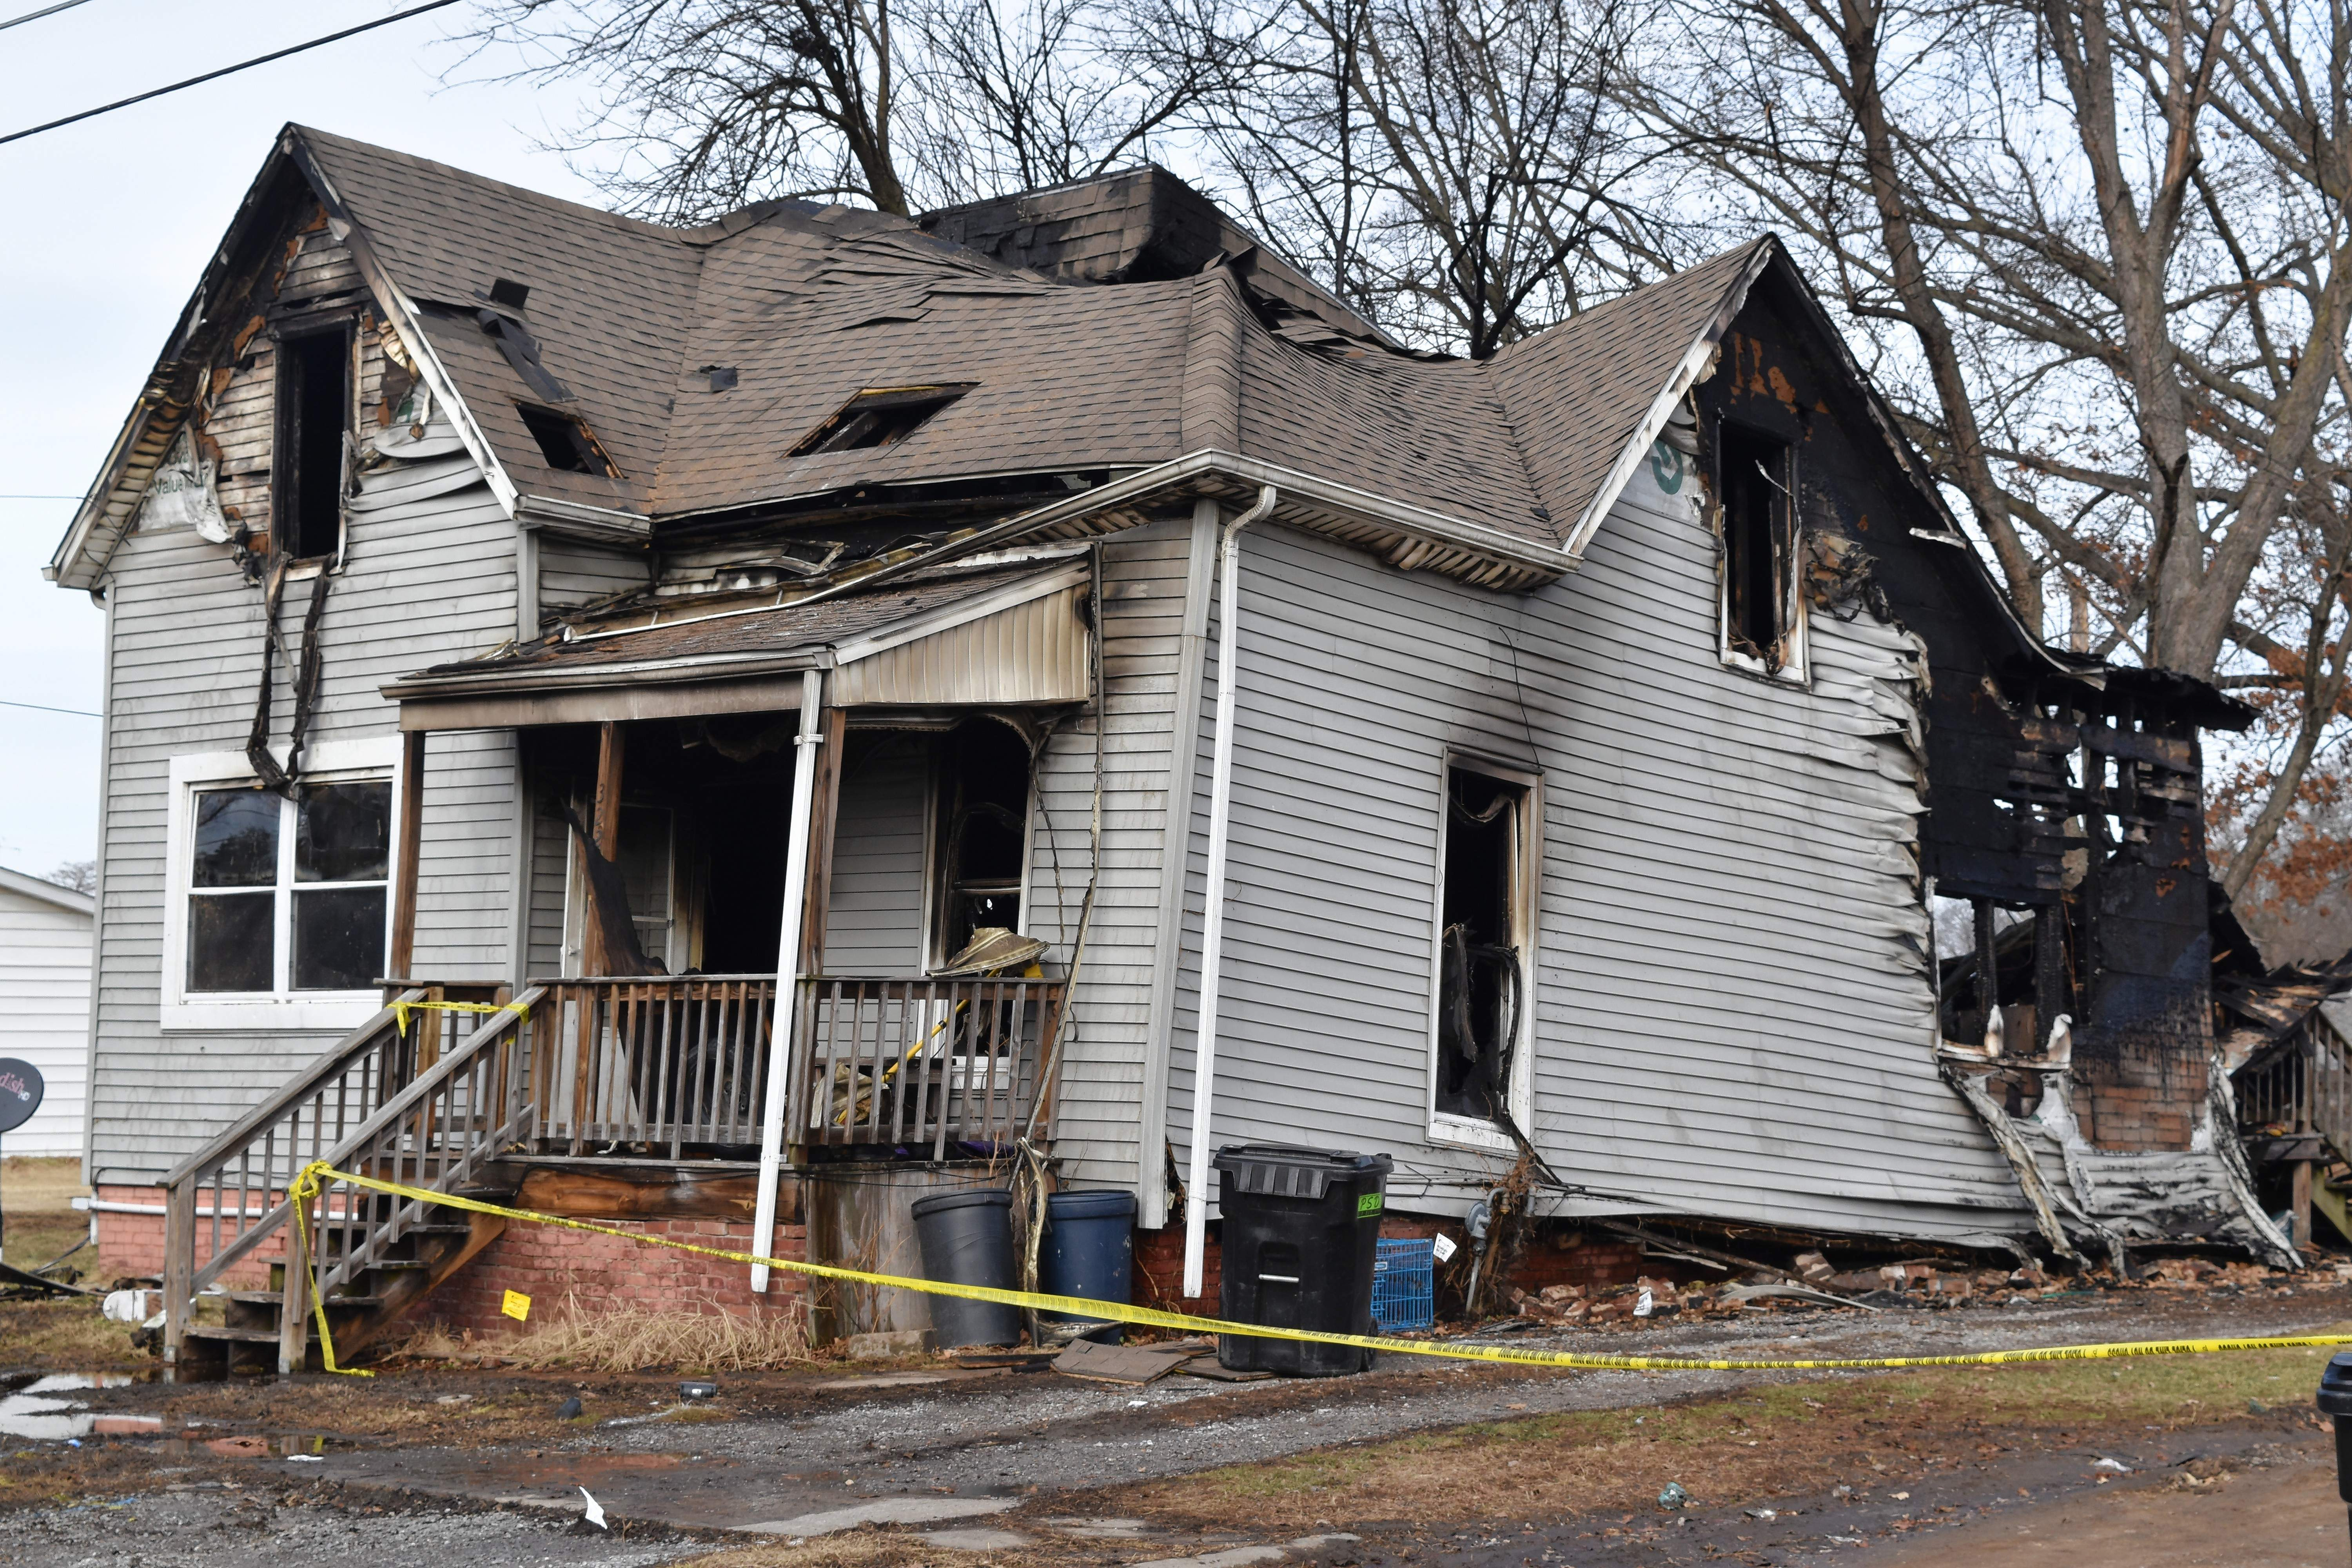 The Peacock family house at 322 Pacific St. in Harrisburg after the early morning fire on Wednesday, Jan. 31.